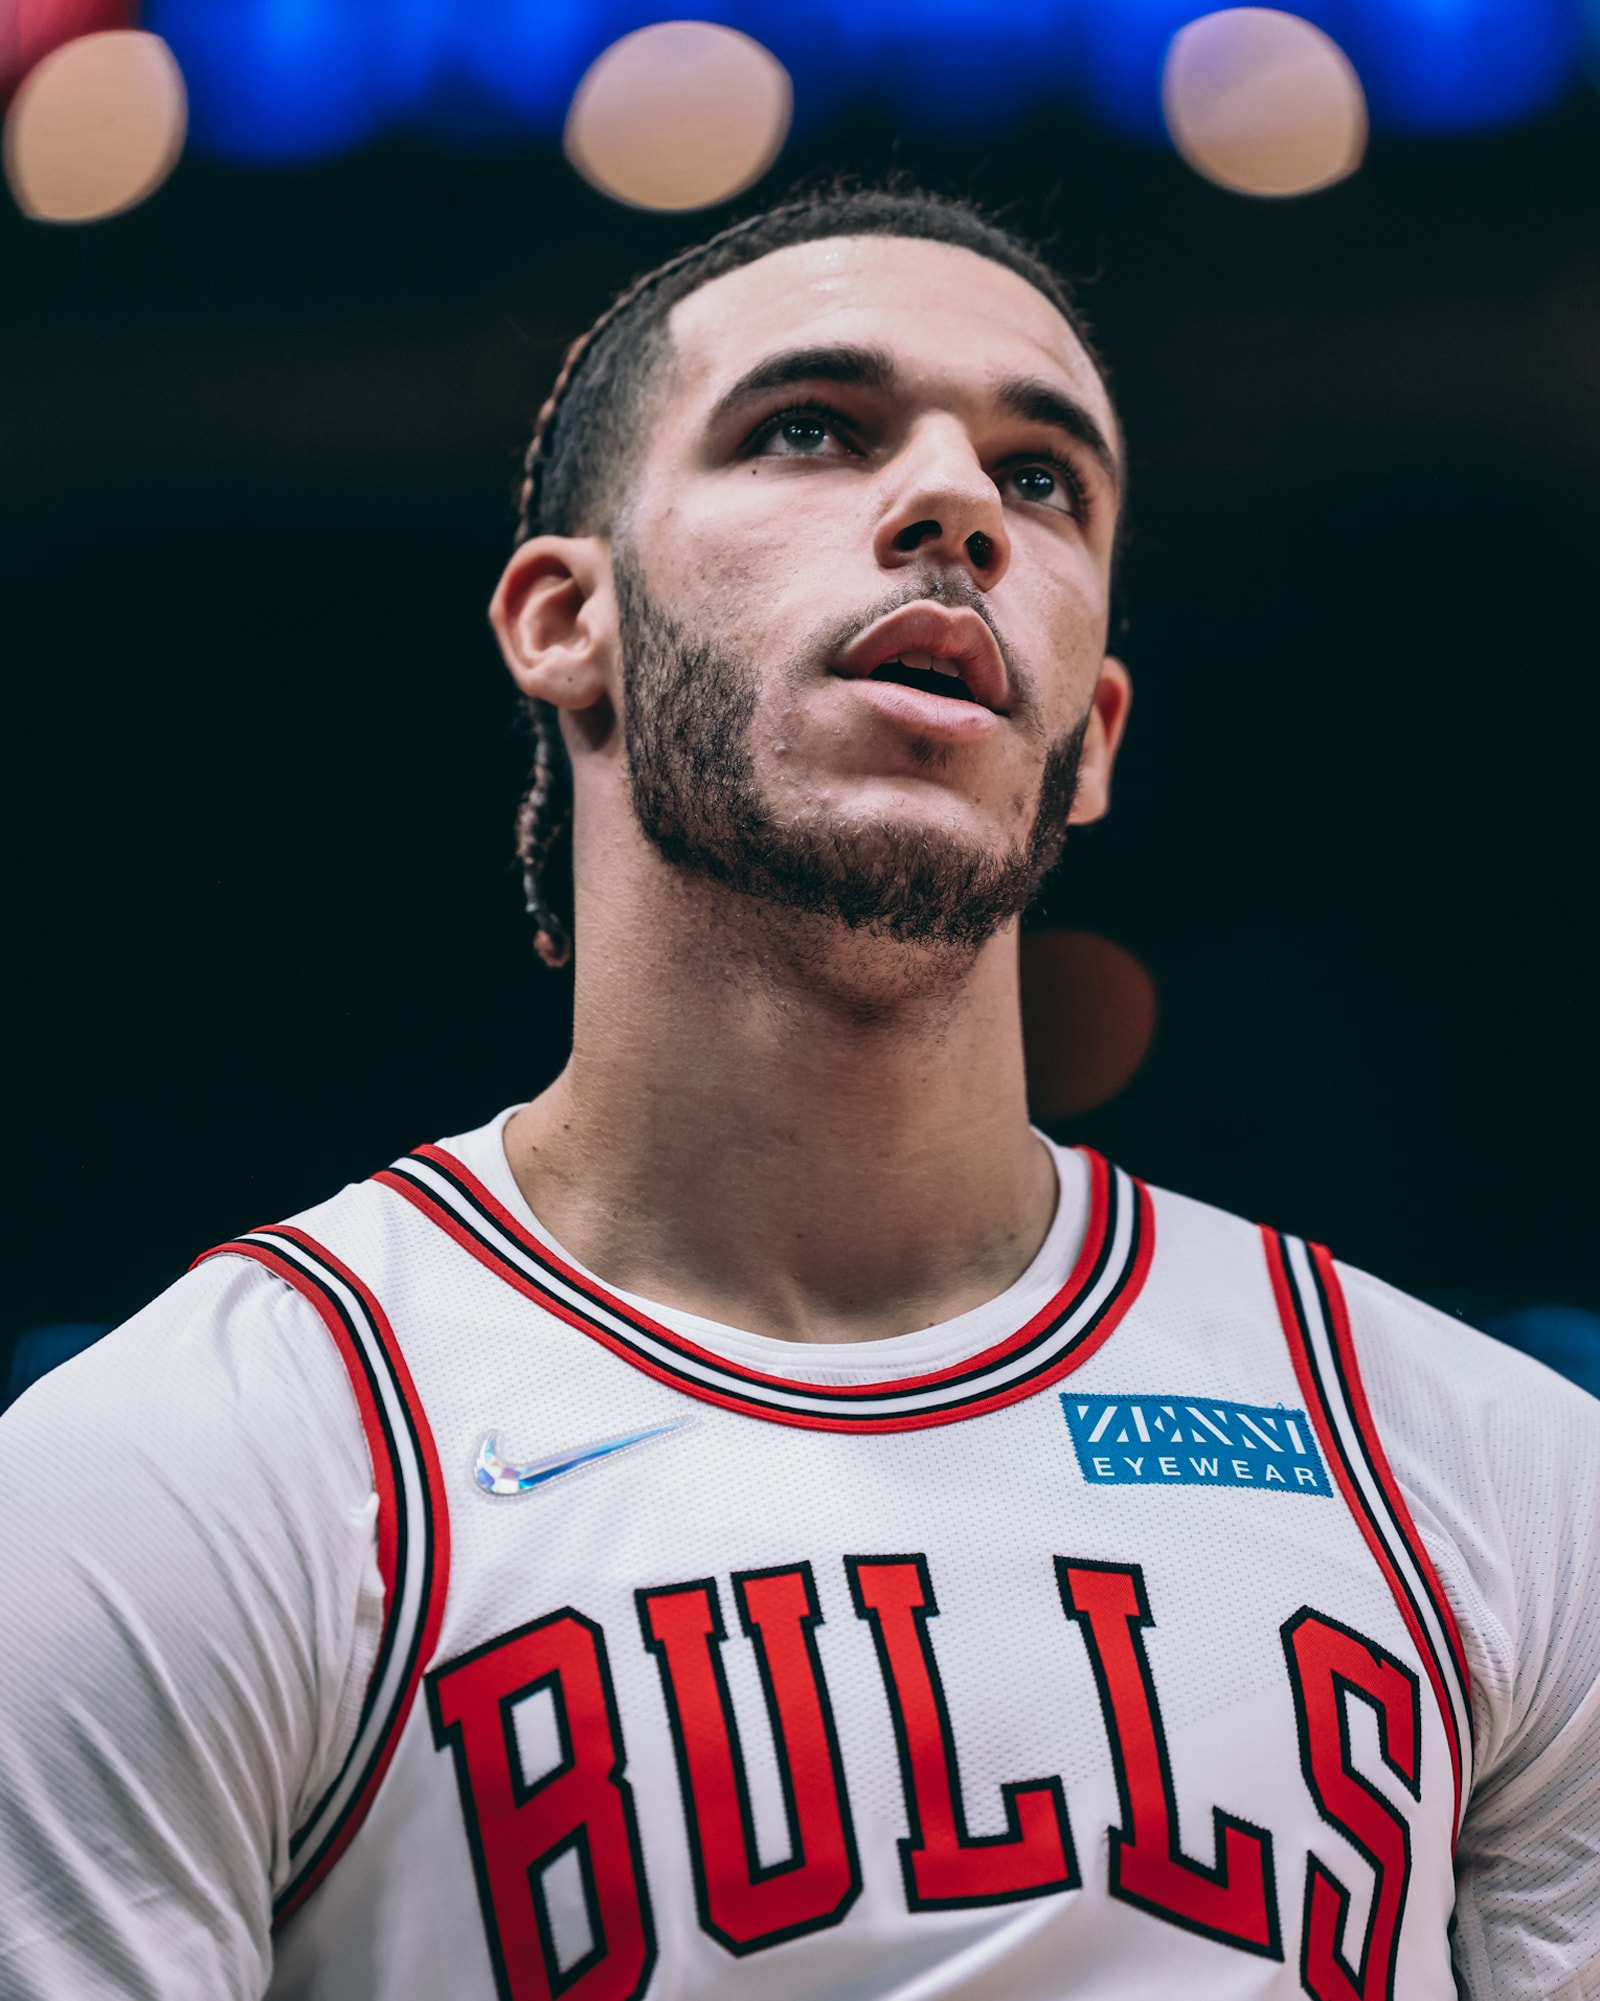 Lonzo Ball during Chicago's preseason opener against the Cavaliers on Tuesday night.